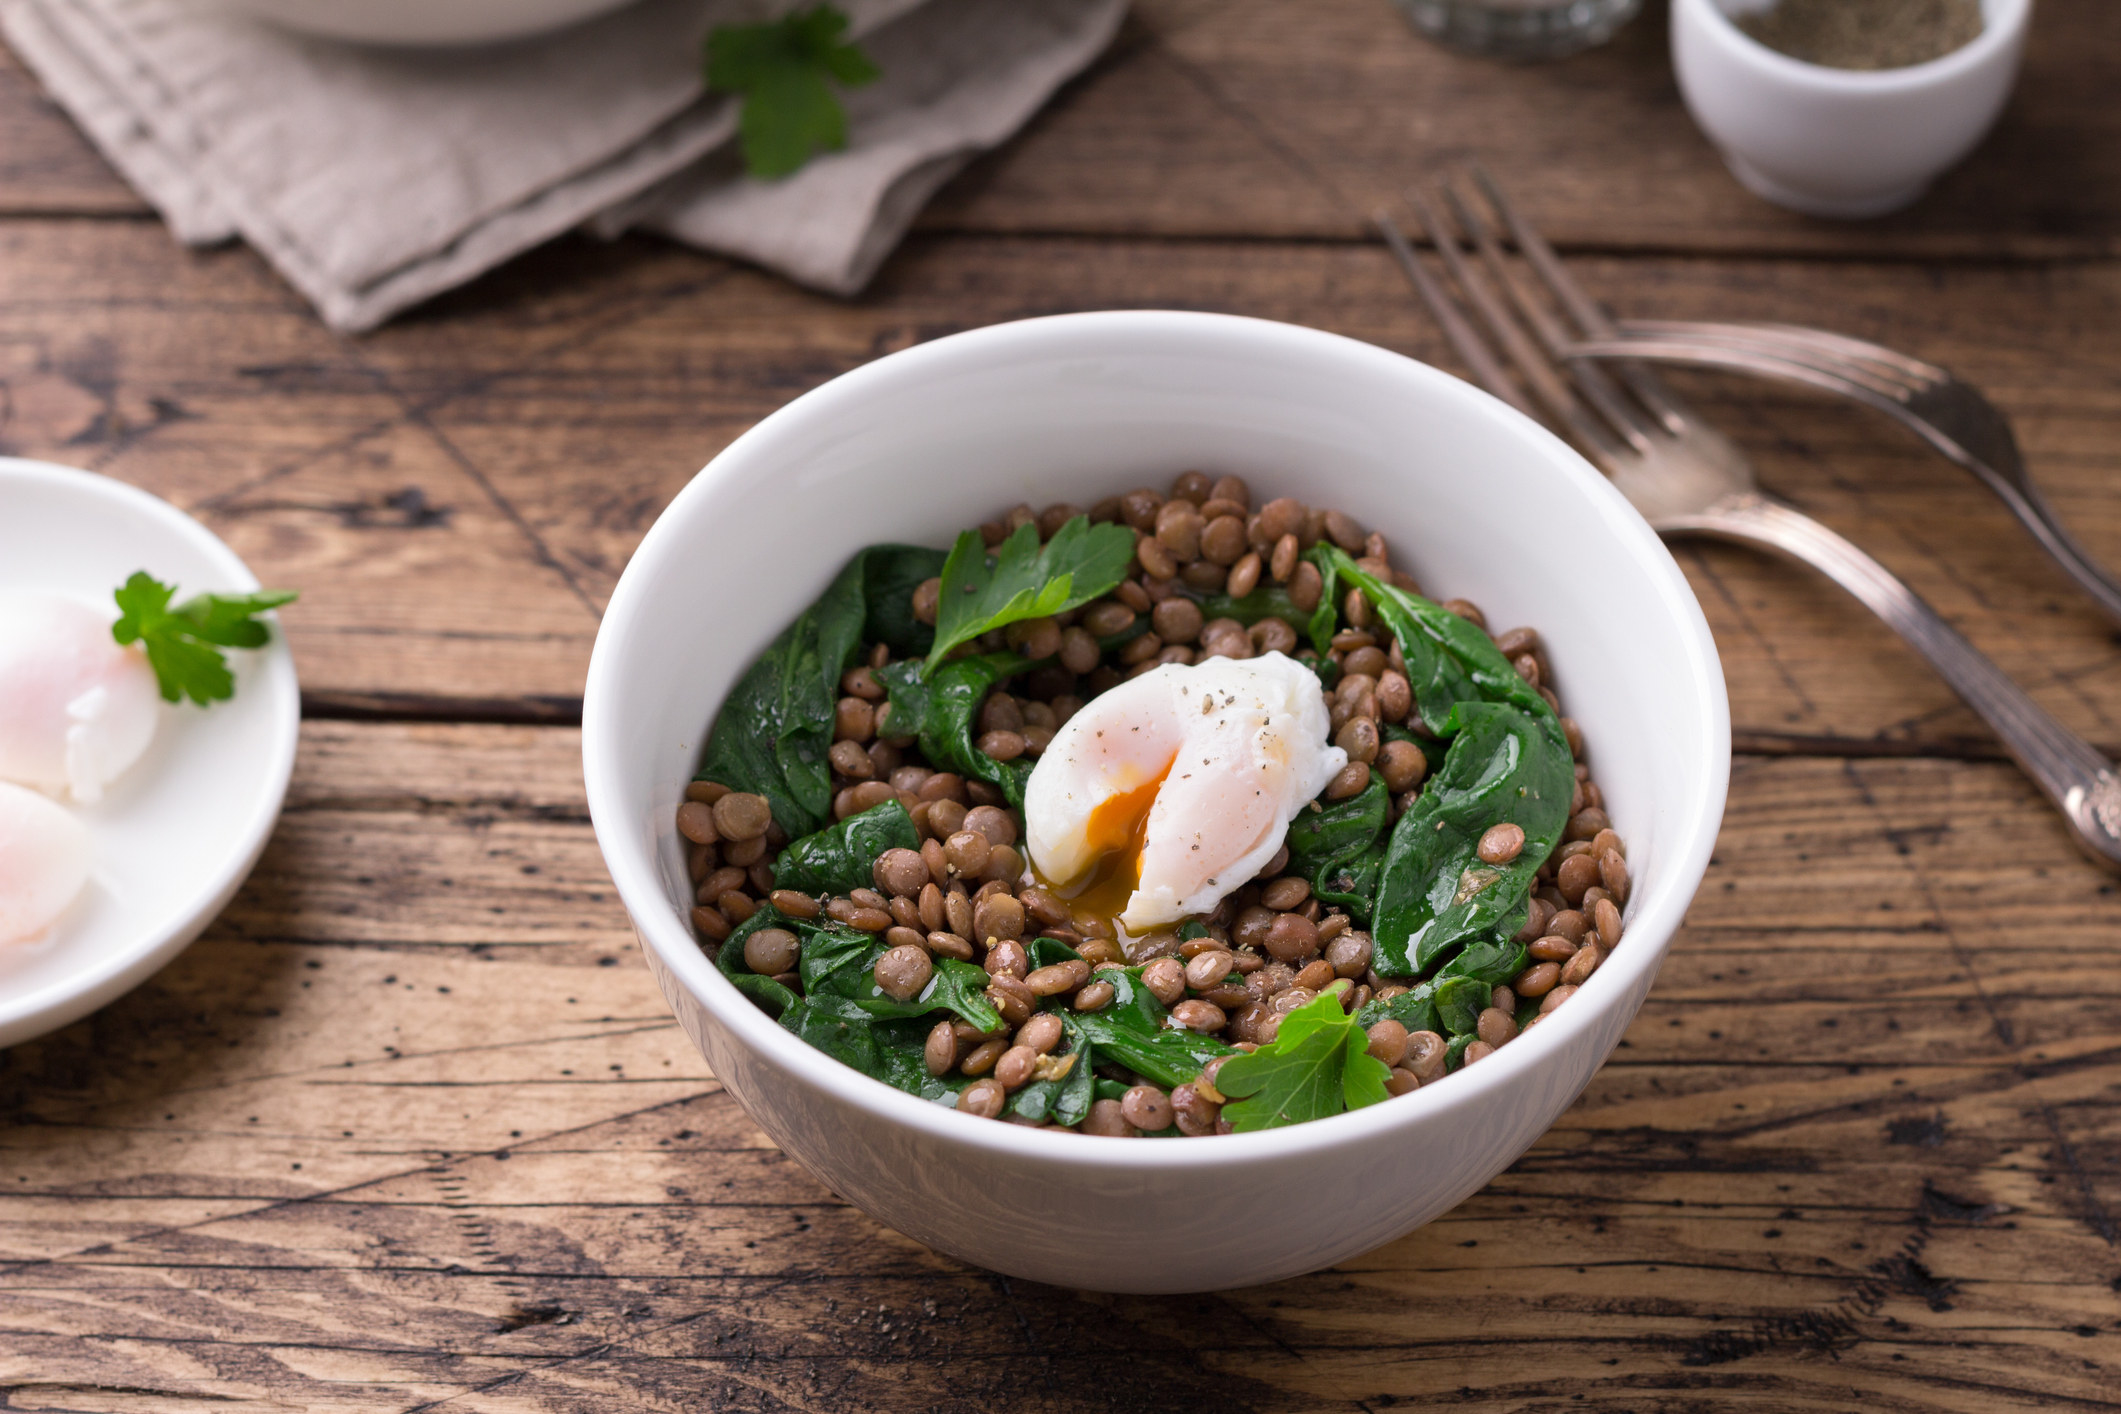 A bowl of lentils with greens and a poached egg.